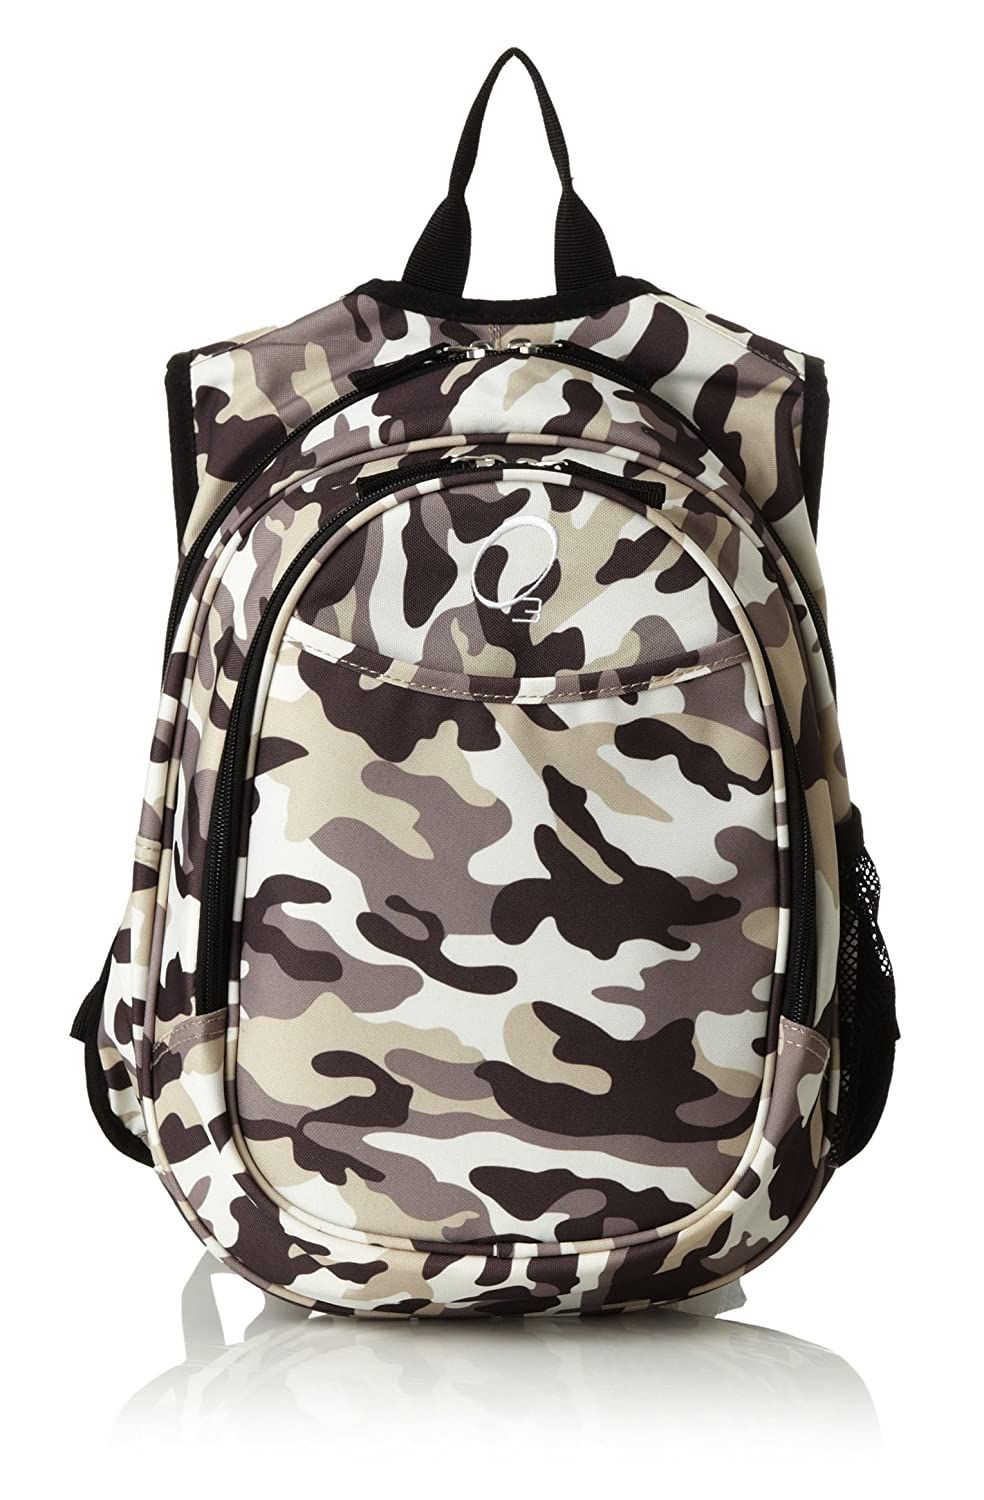 Camo Obersee Kids Pre-School All-In-One Backpack with Cooler, Skulls